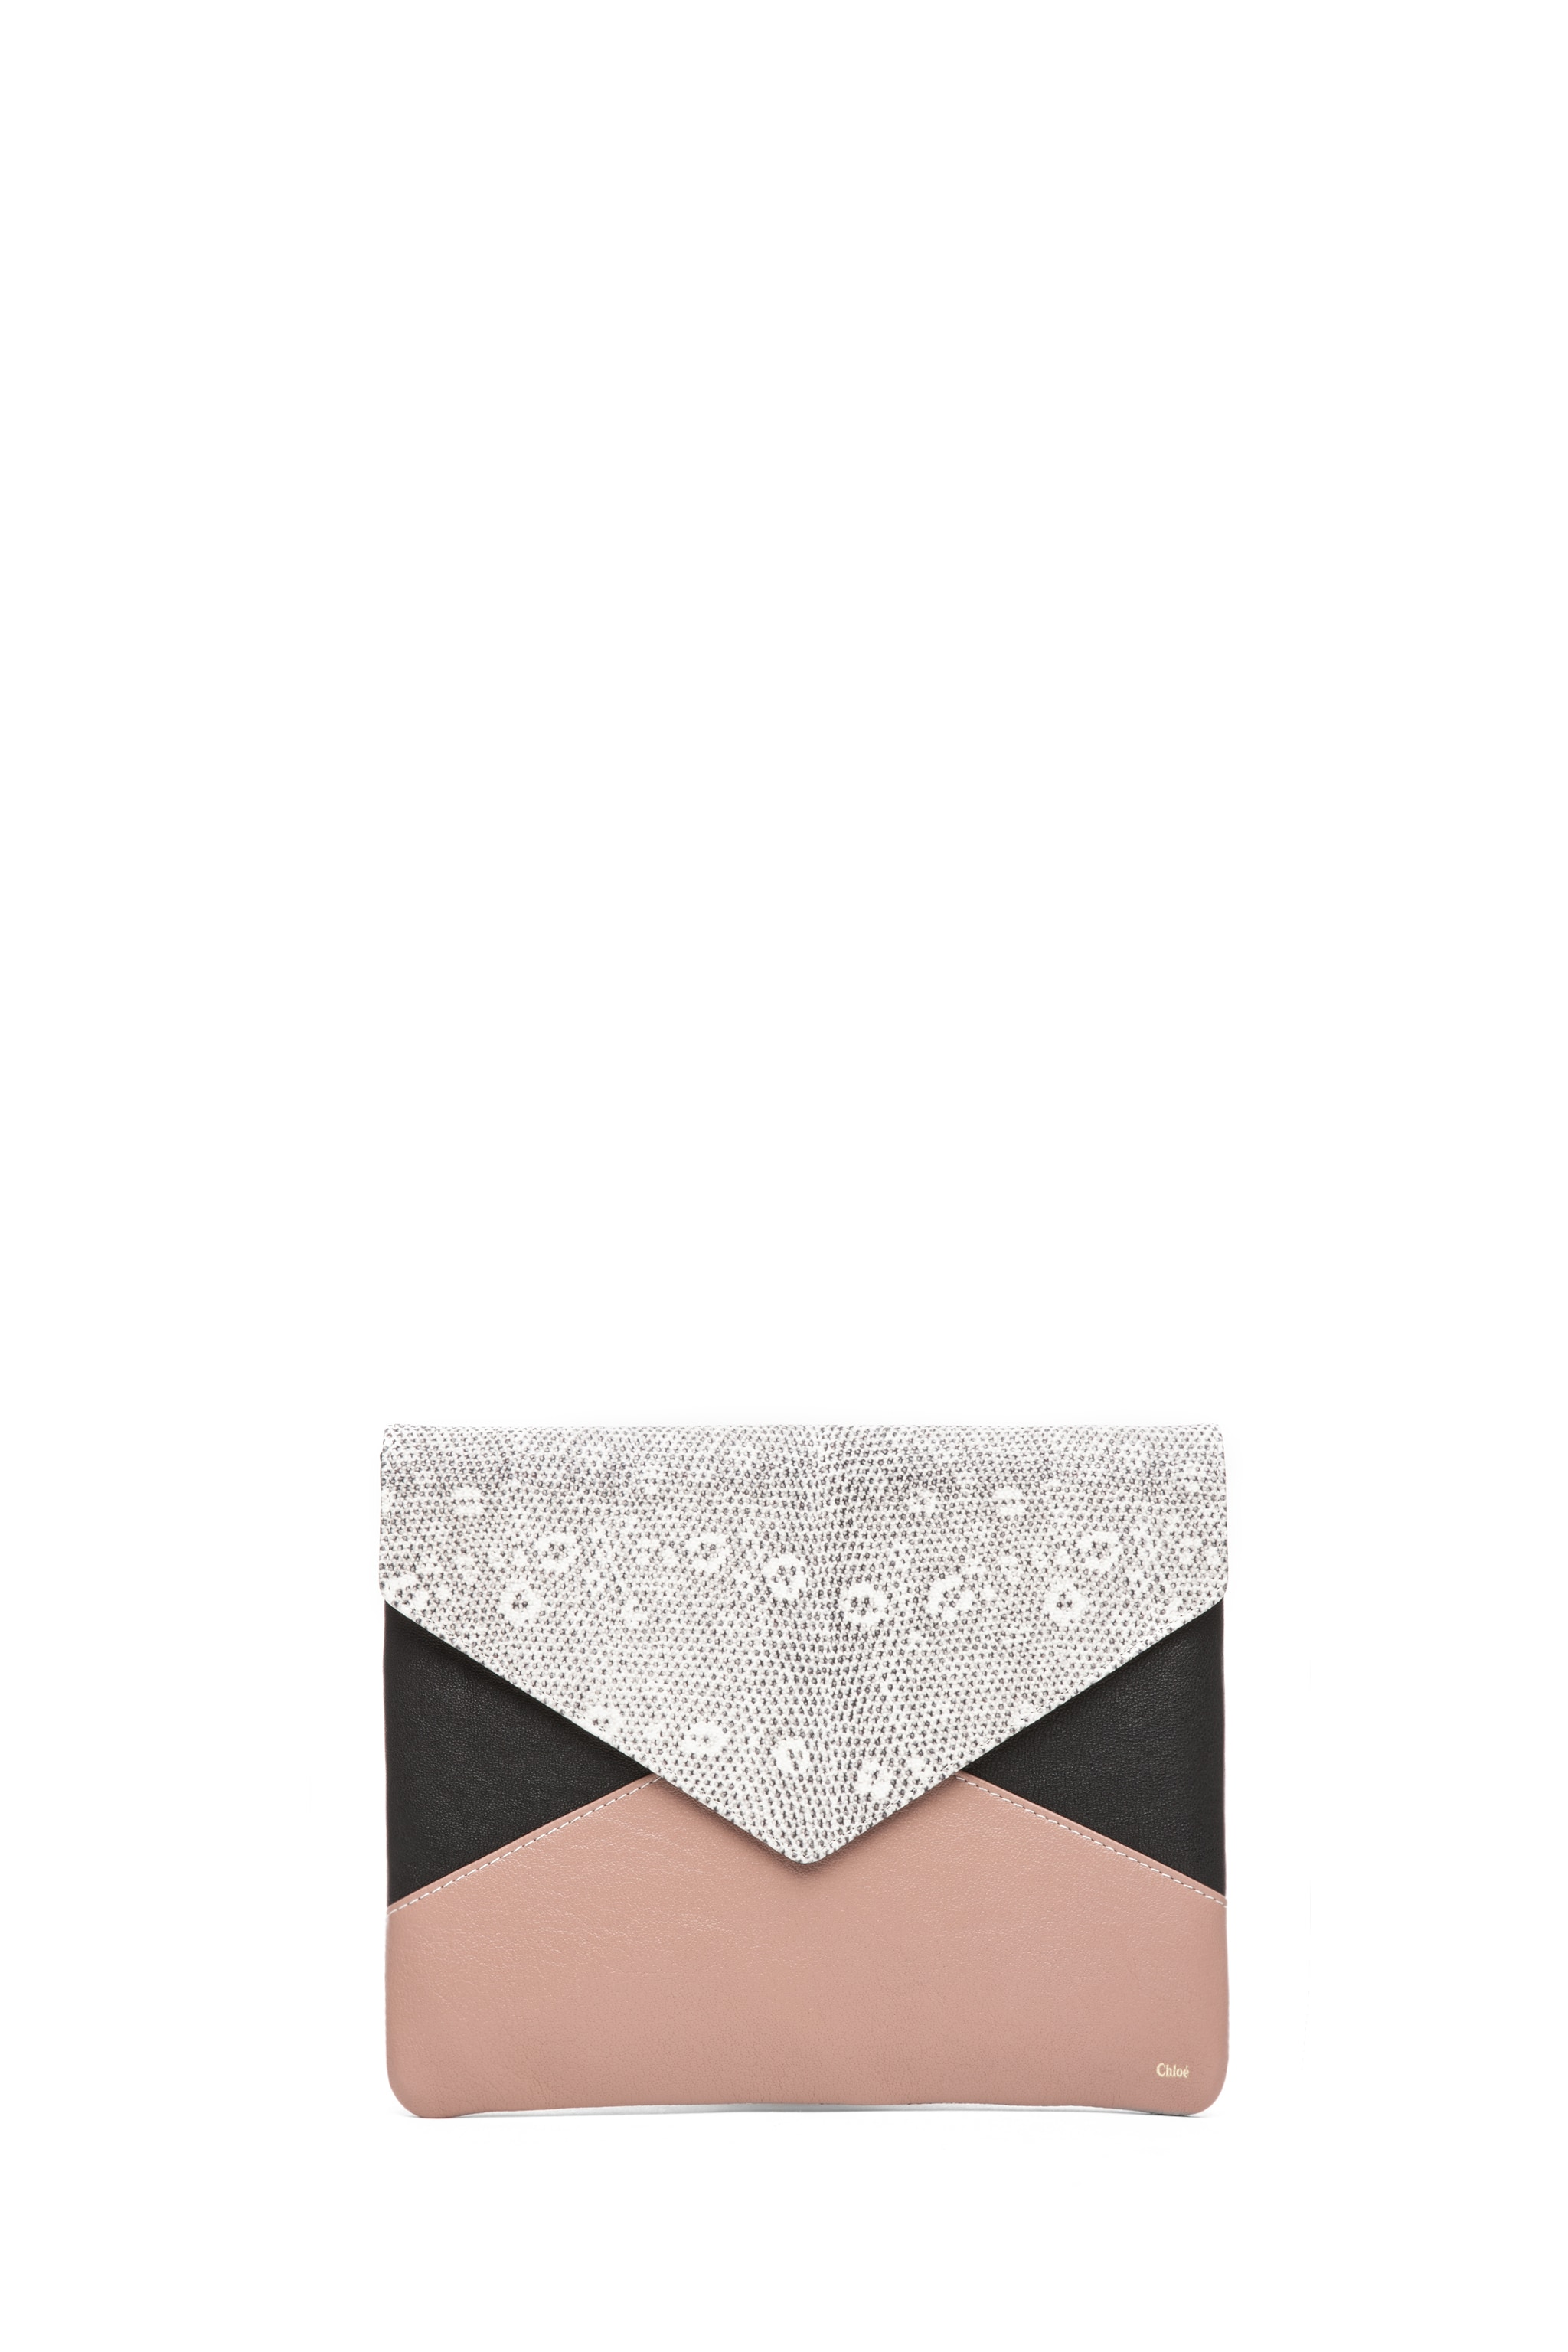 Image 1 of Chloe Patchwork Clutch in Black & White